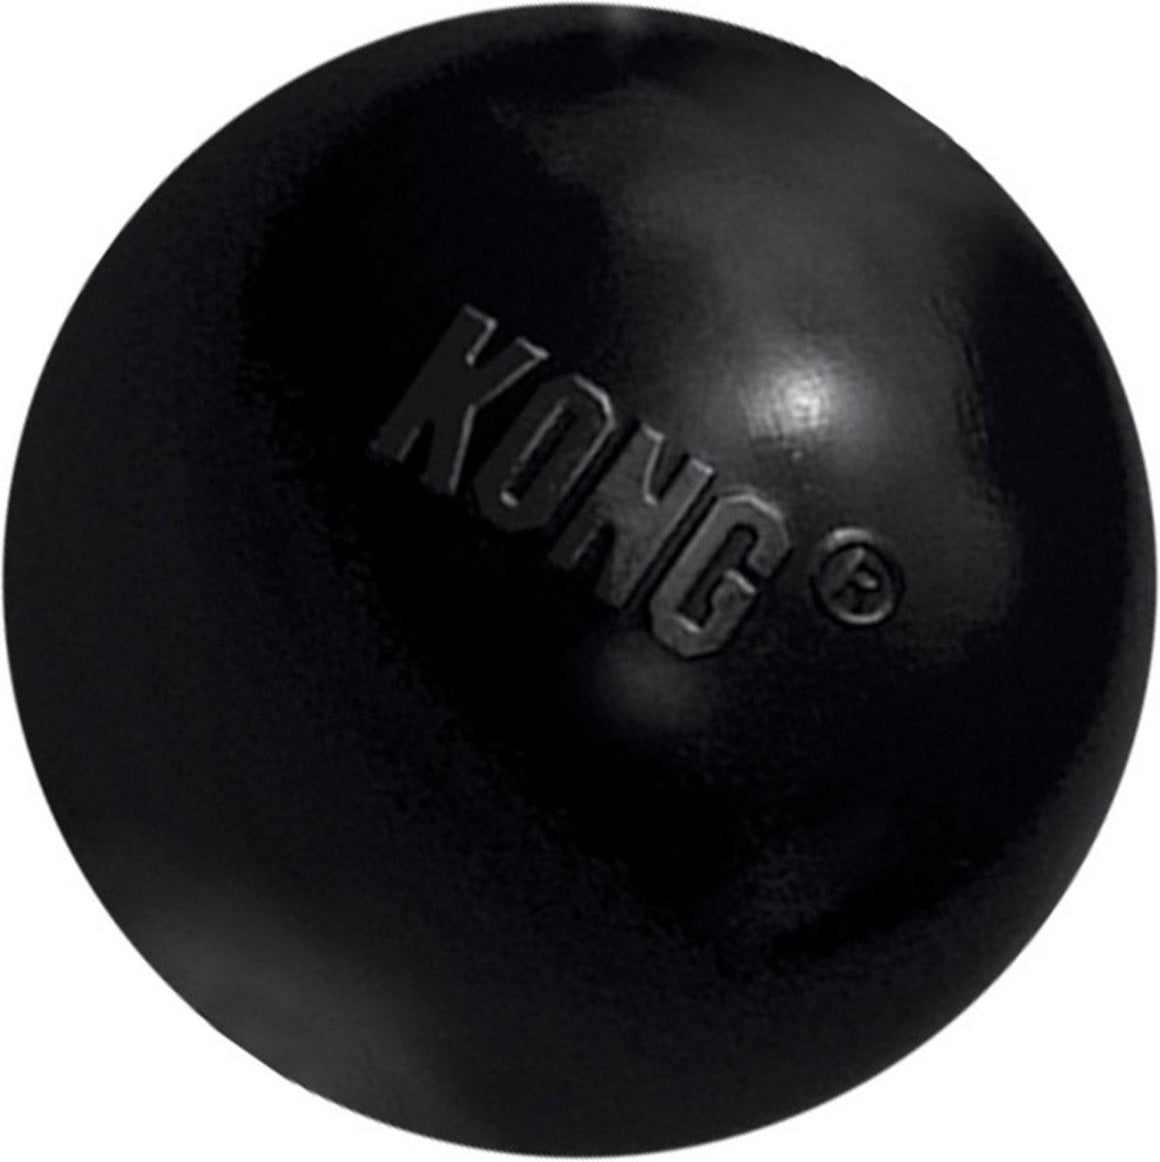 Kong Extreme Ball Dog Toy-Le Pup Pet Supplies and Grooming